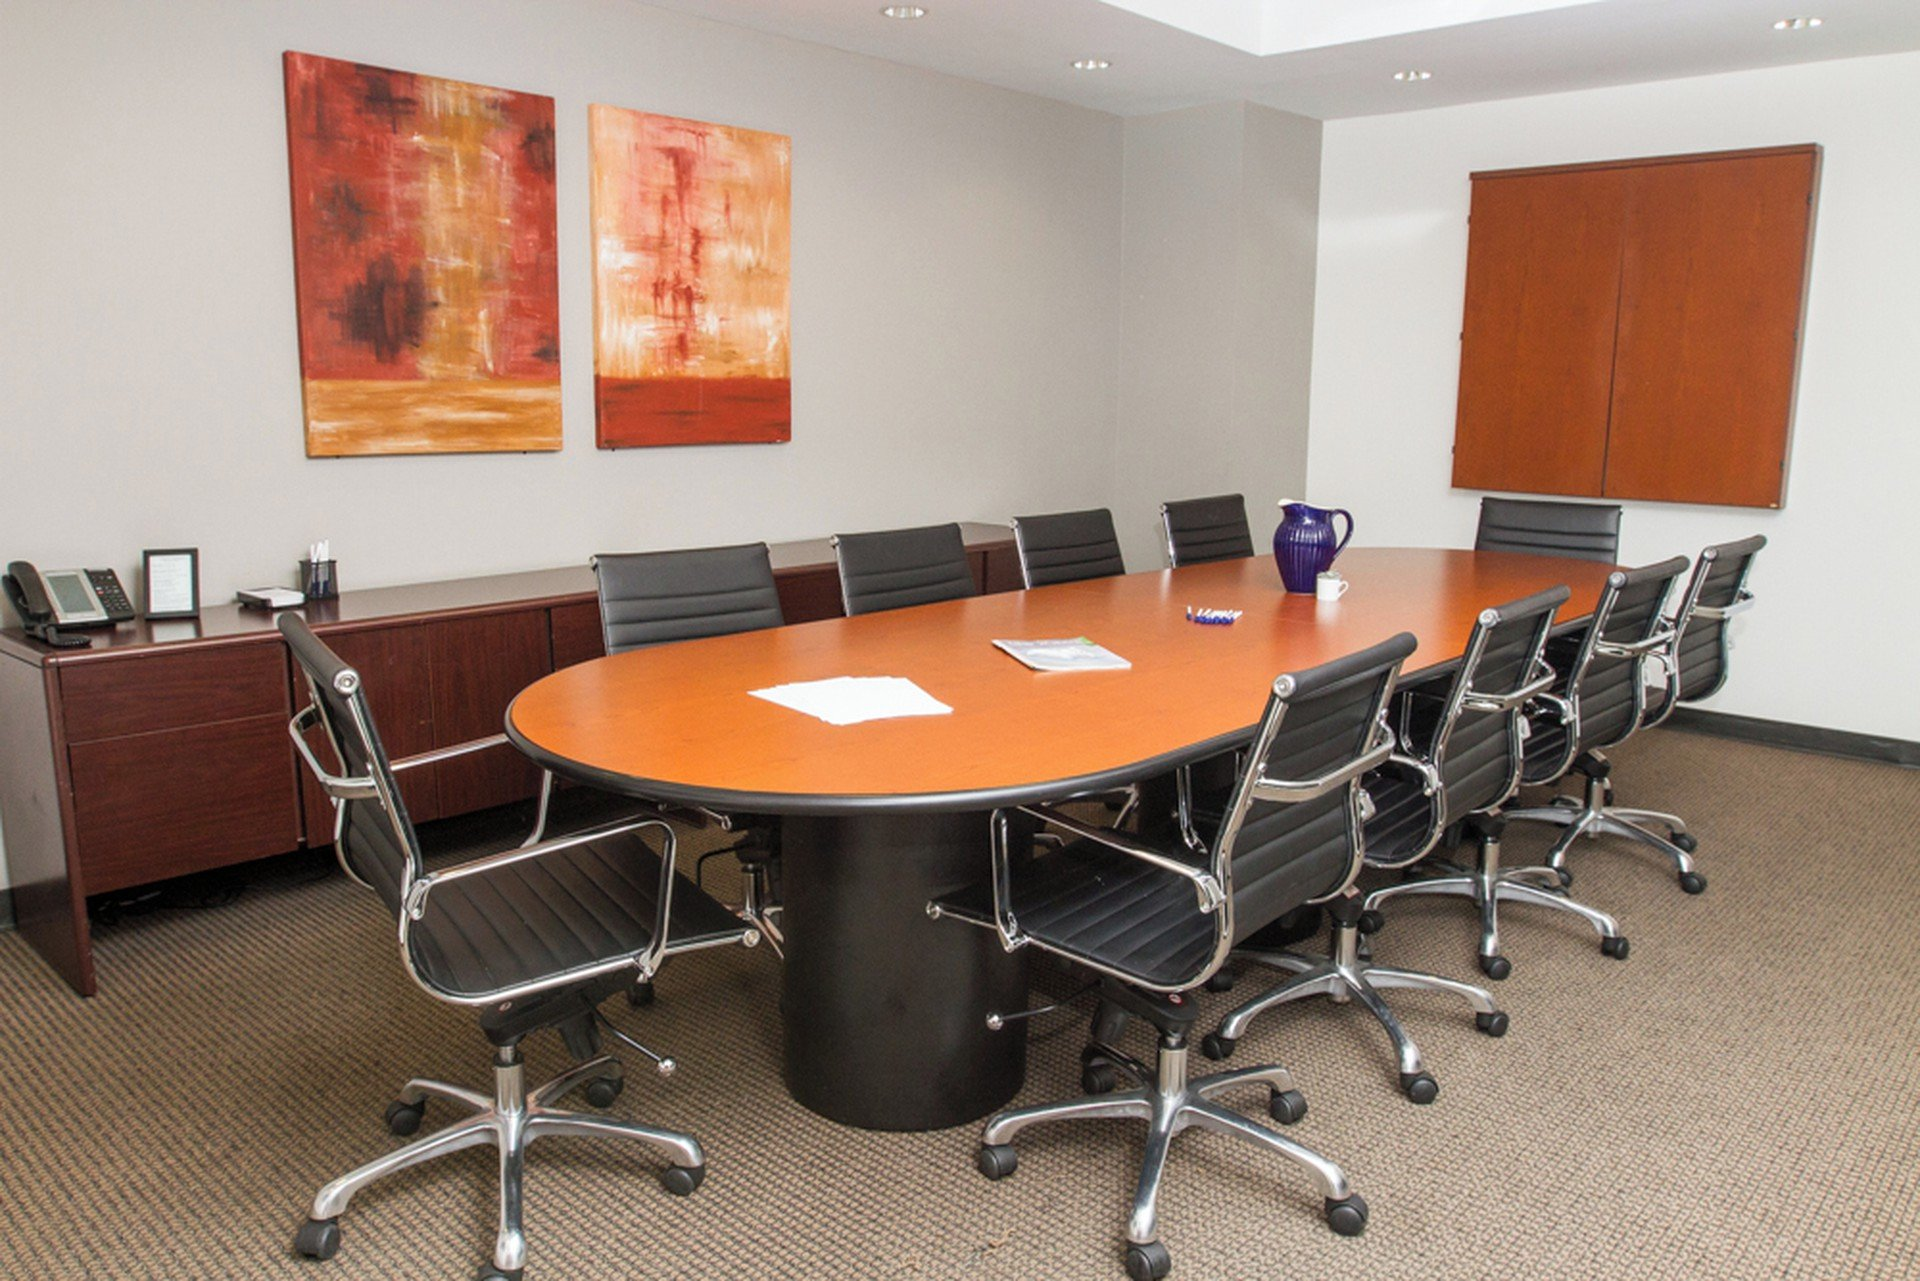 NYC  Meetingraum 10 Person Video Conference Room at 37th and Sixth Avenue image 0